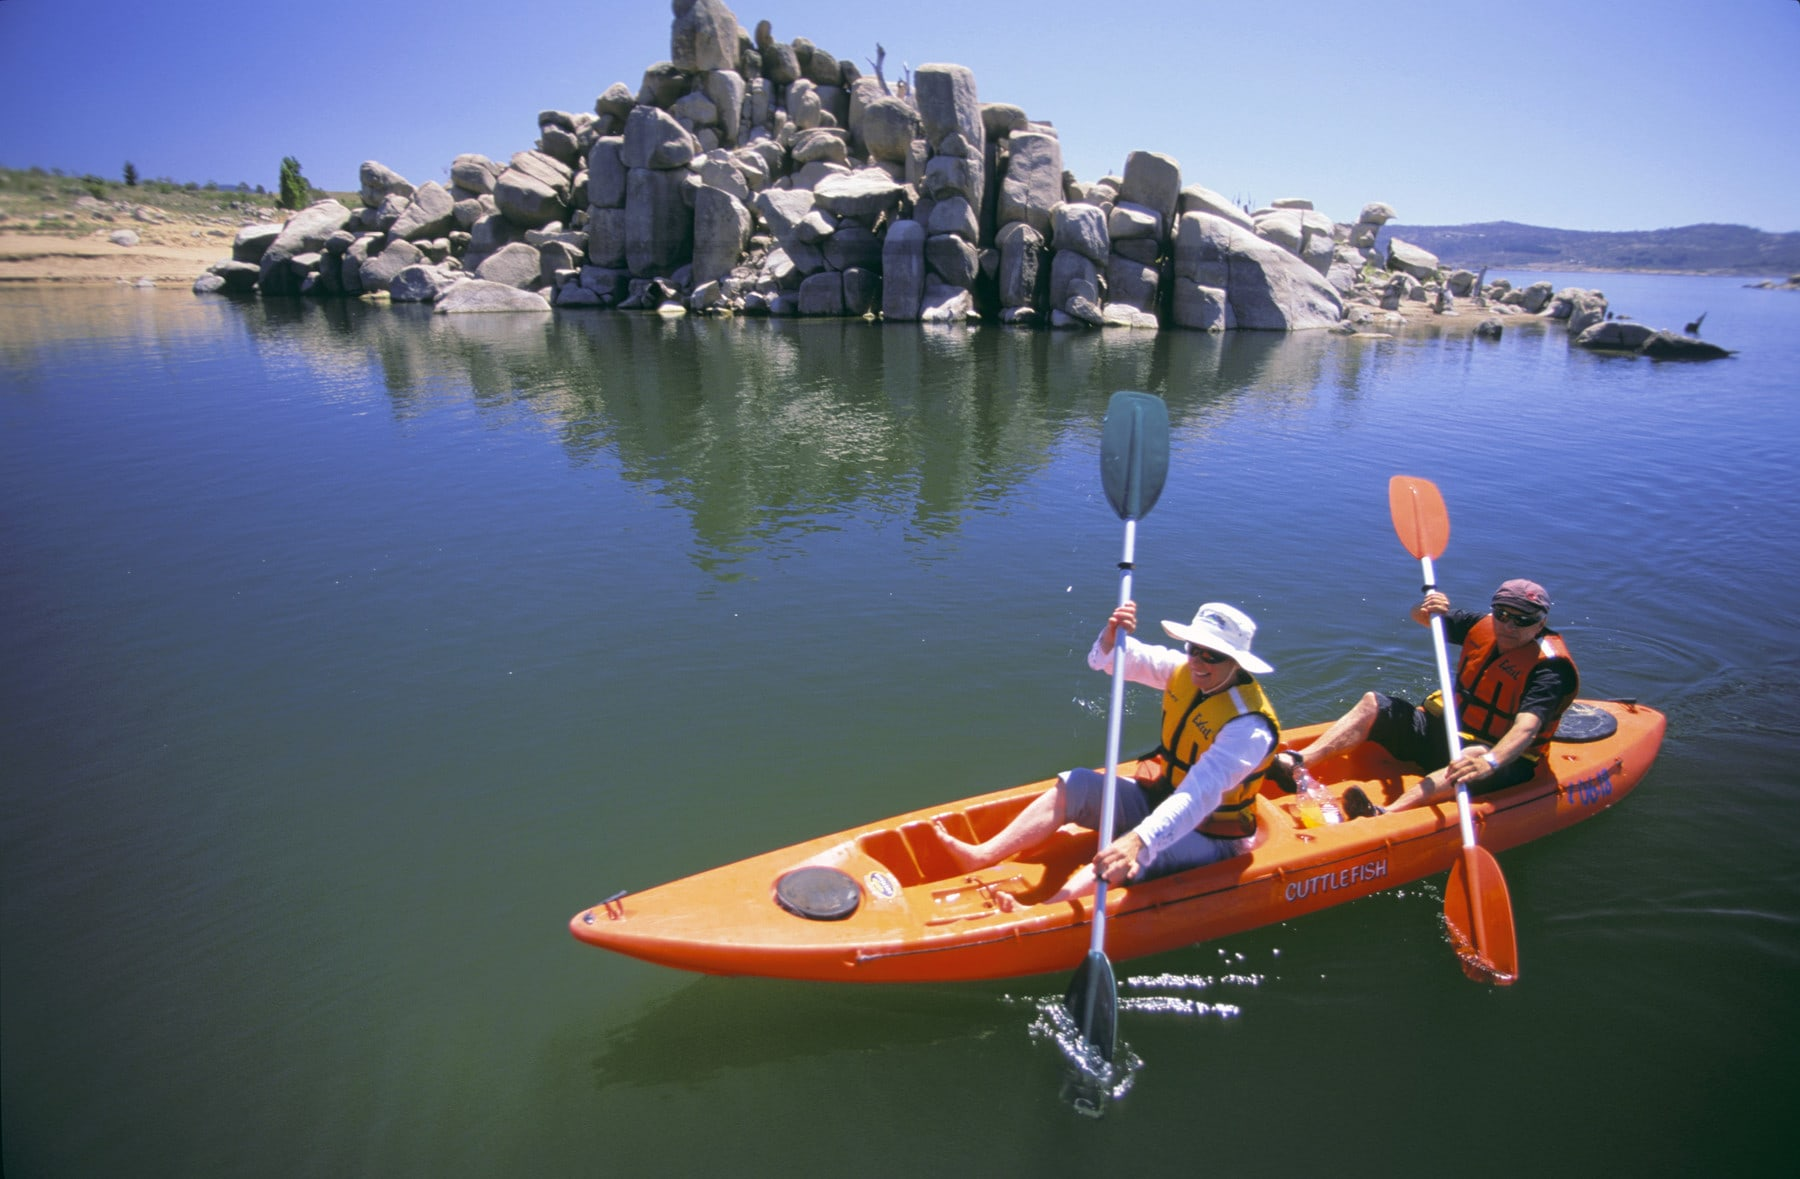 two people in a canoe on lake jindabyne